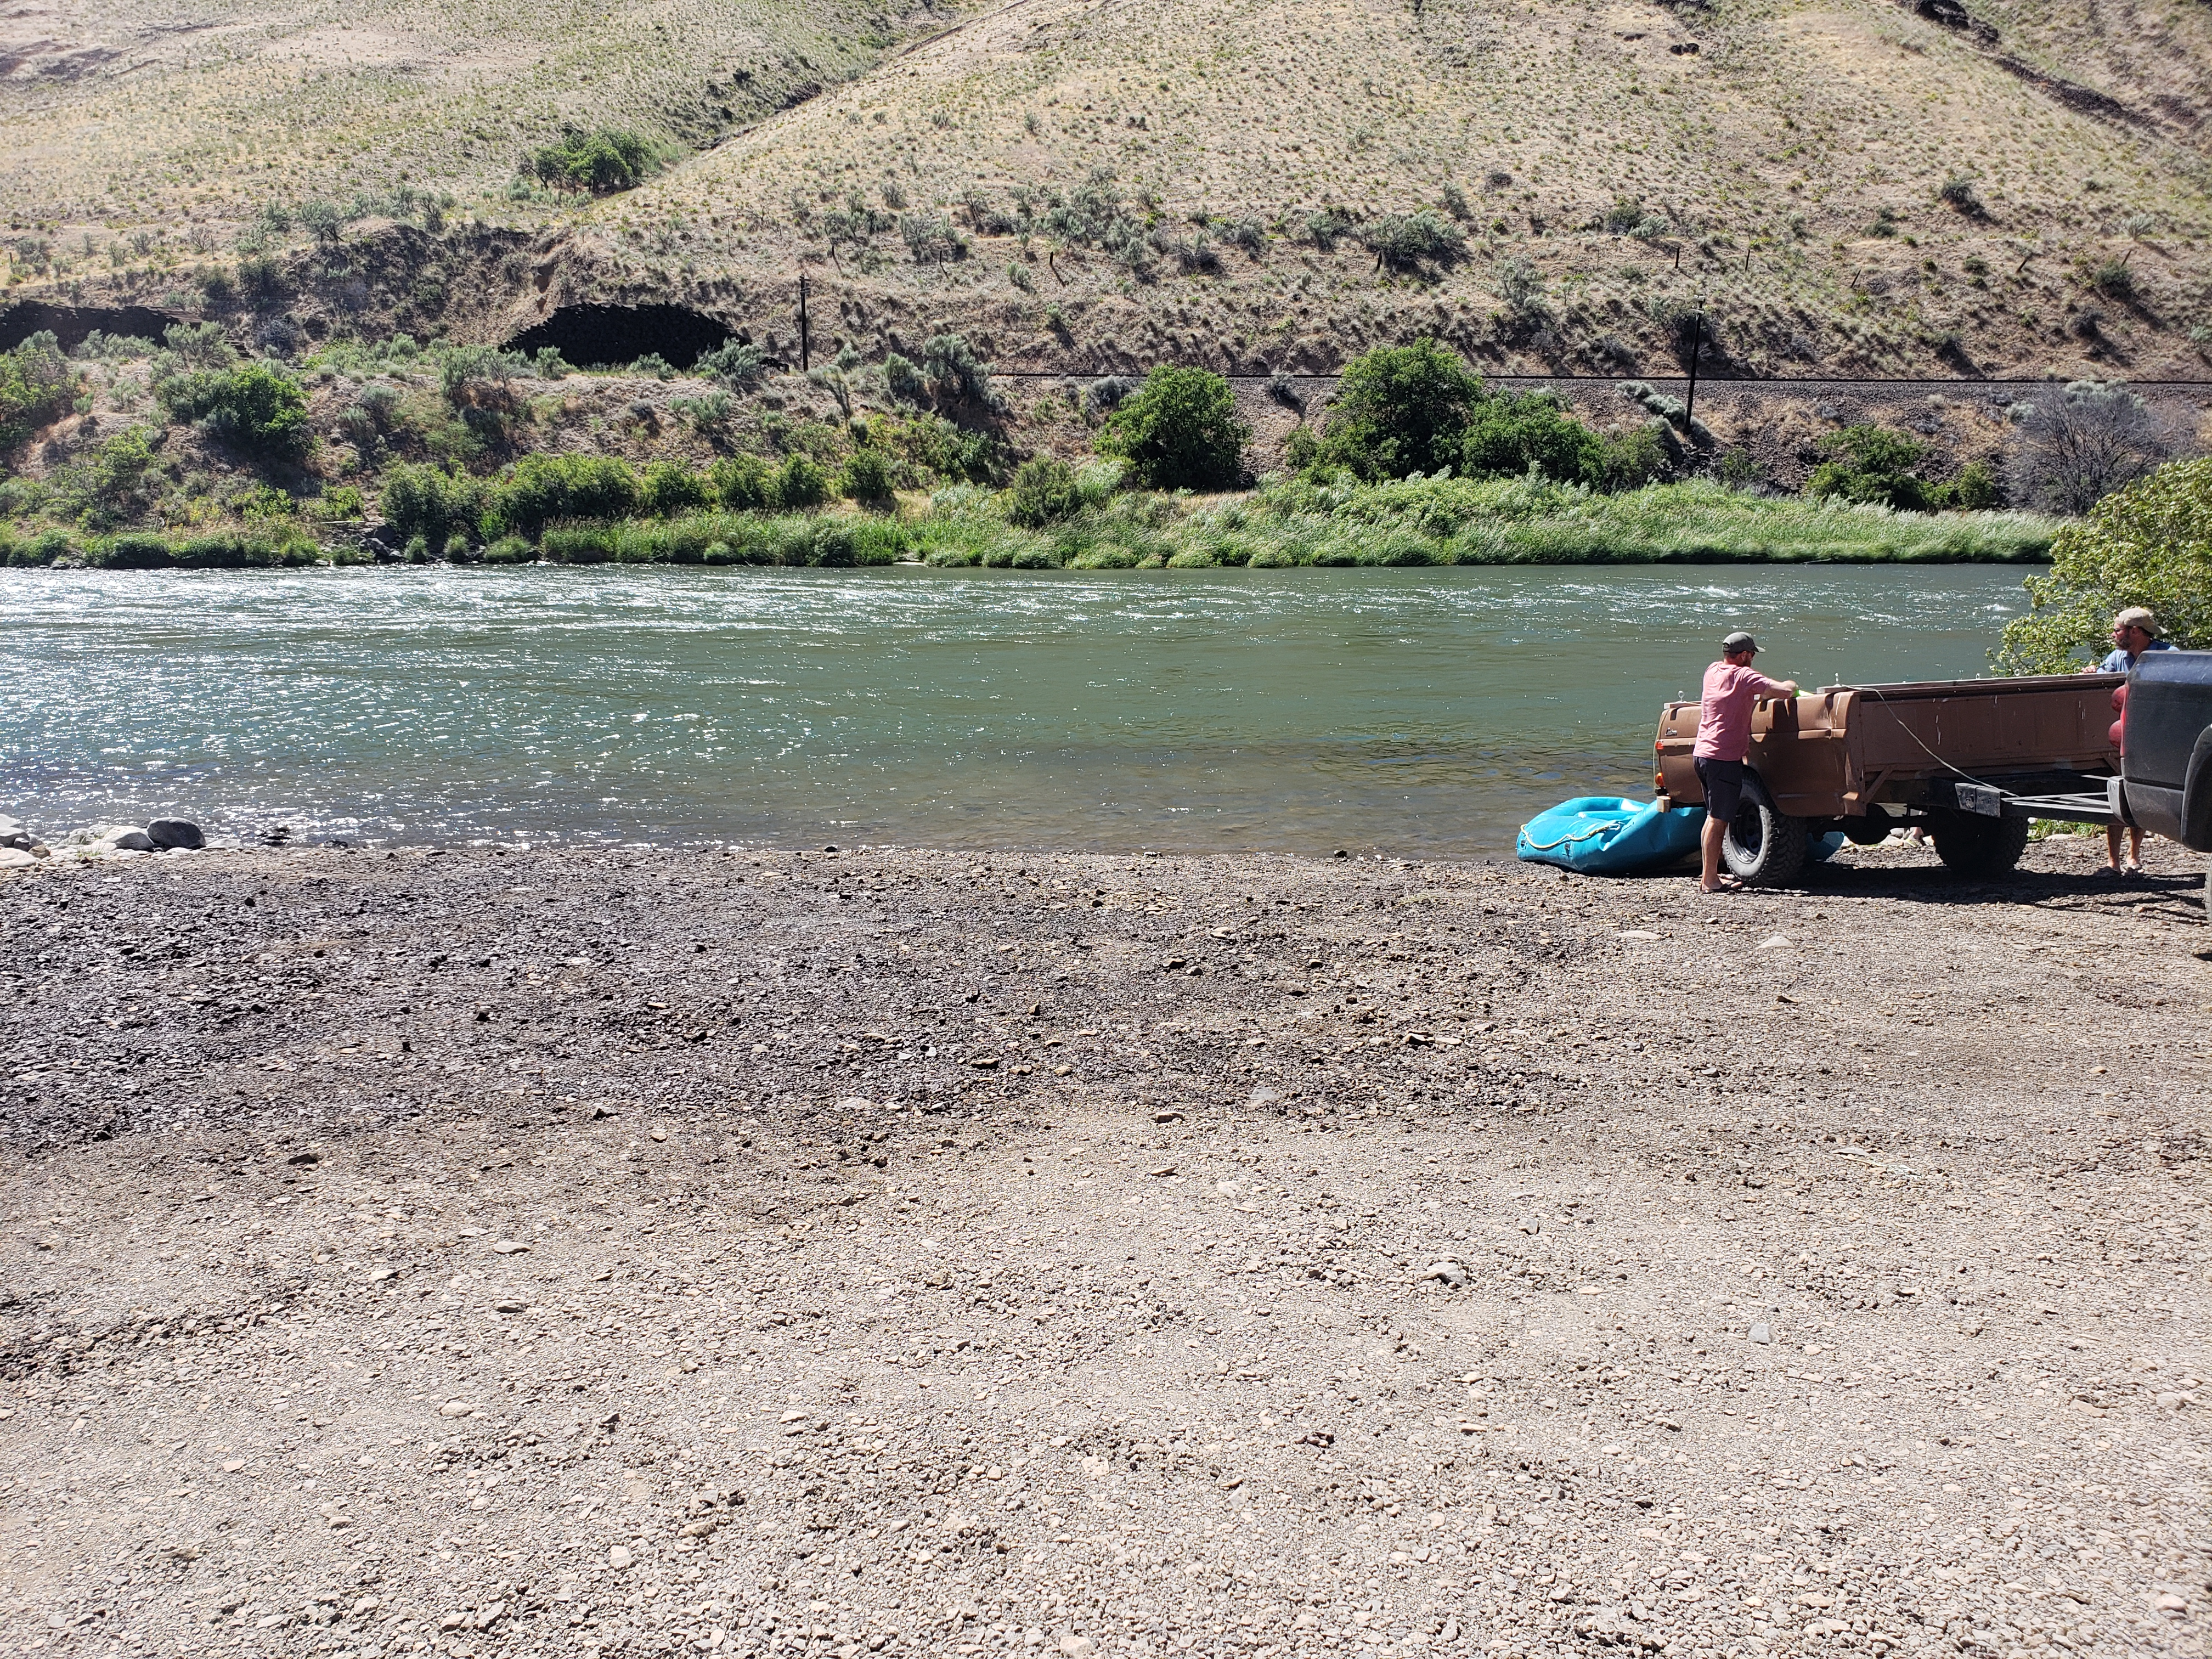 Deschutes River Outfitters and Guides Association (DROGA